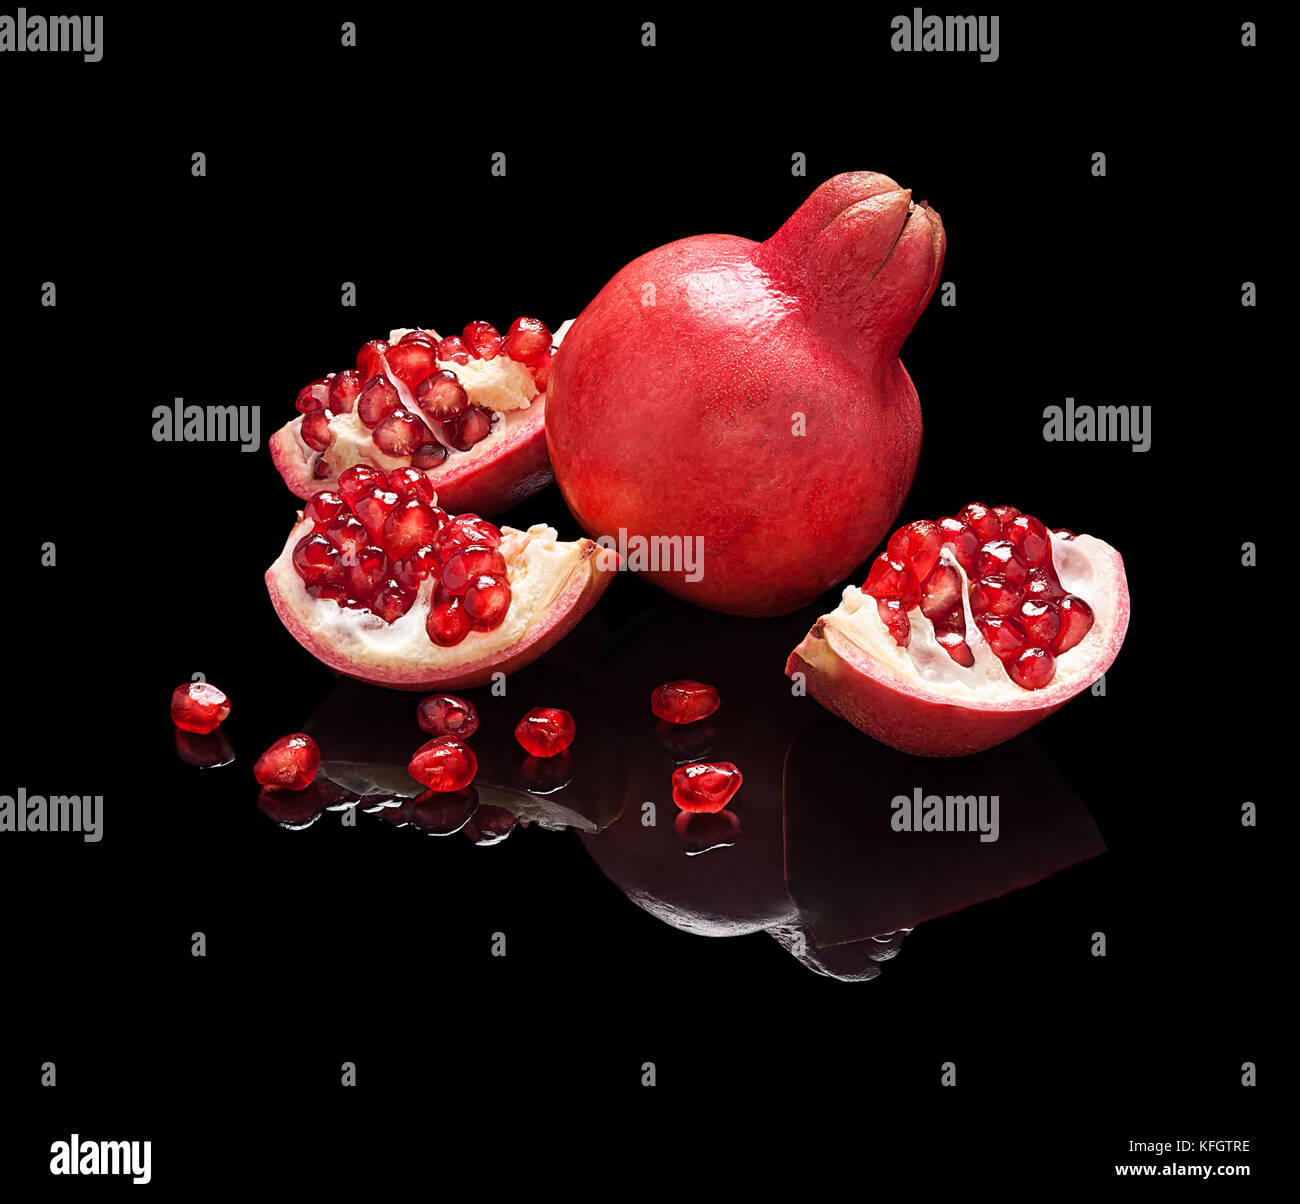 Pomegranate fruit with seeds and slices isolated on black glossy background with real reflection. - Stock Image